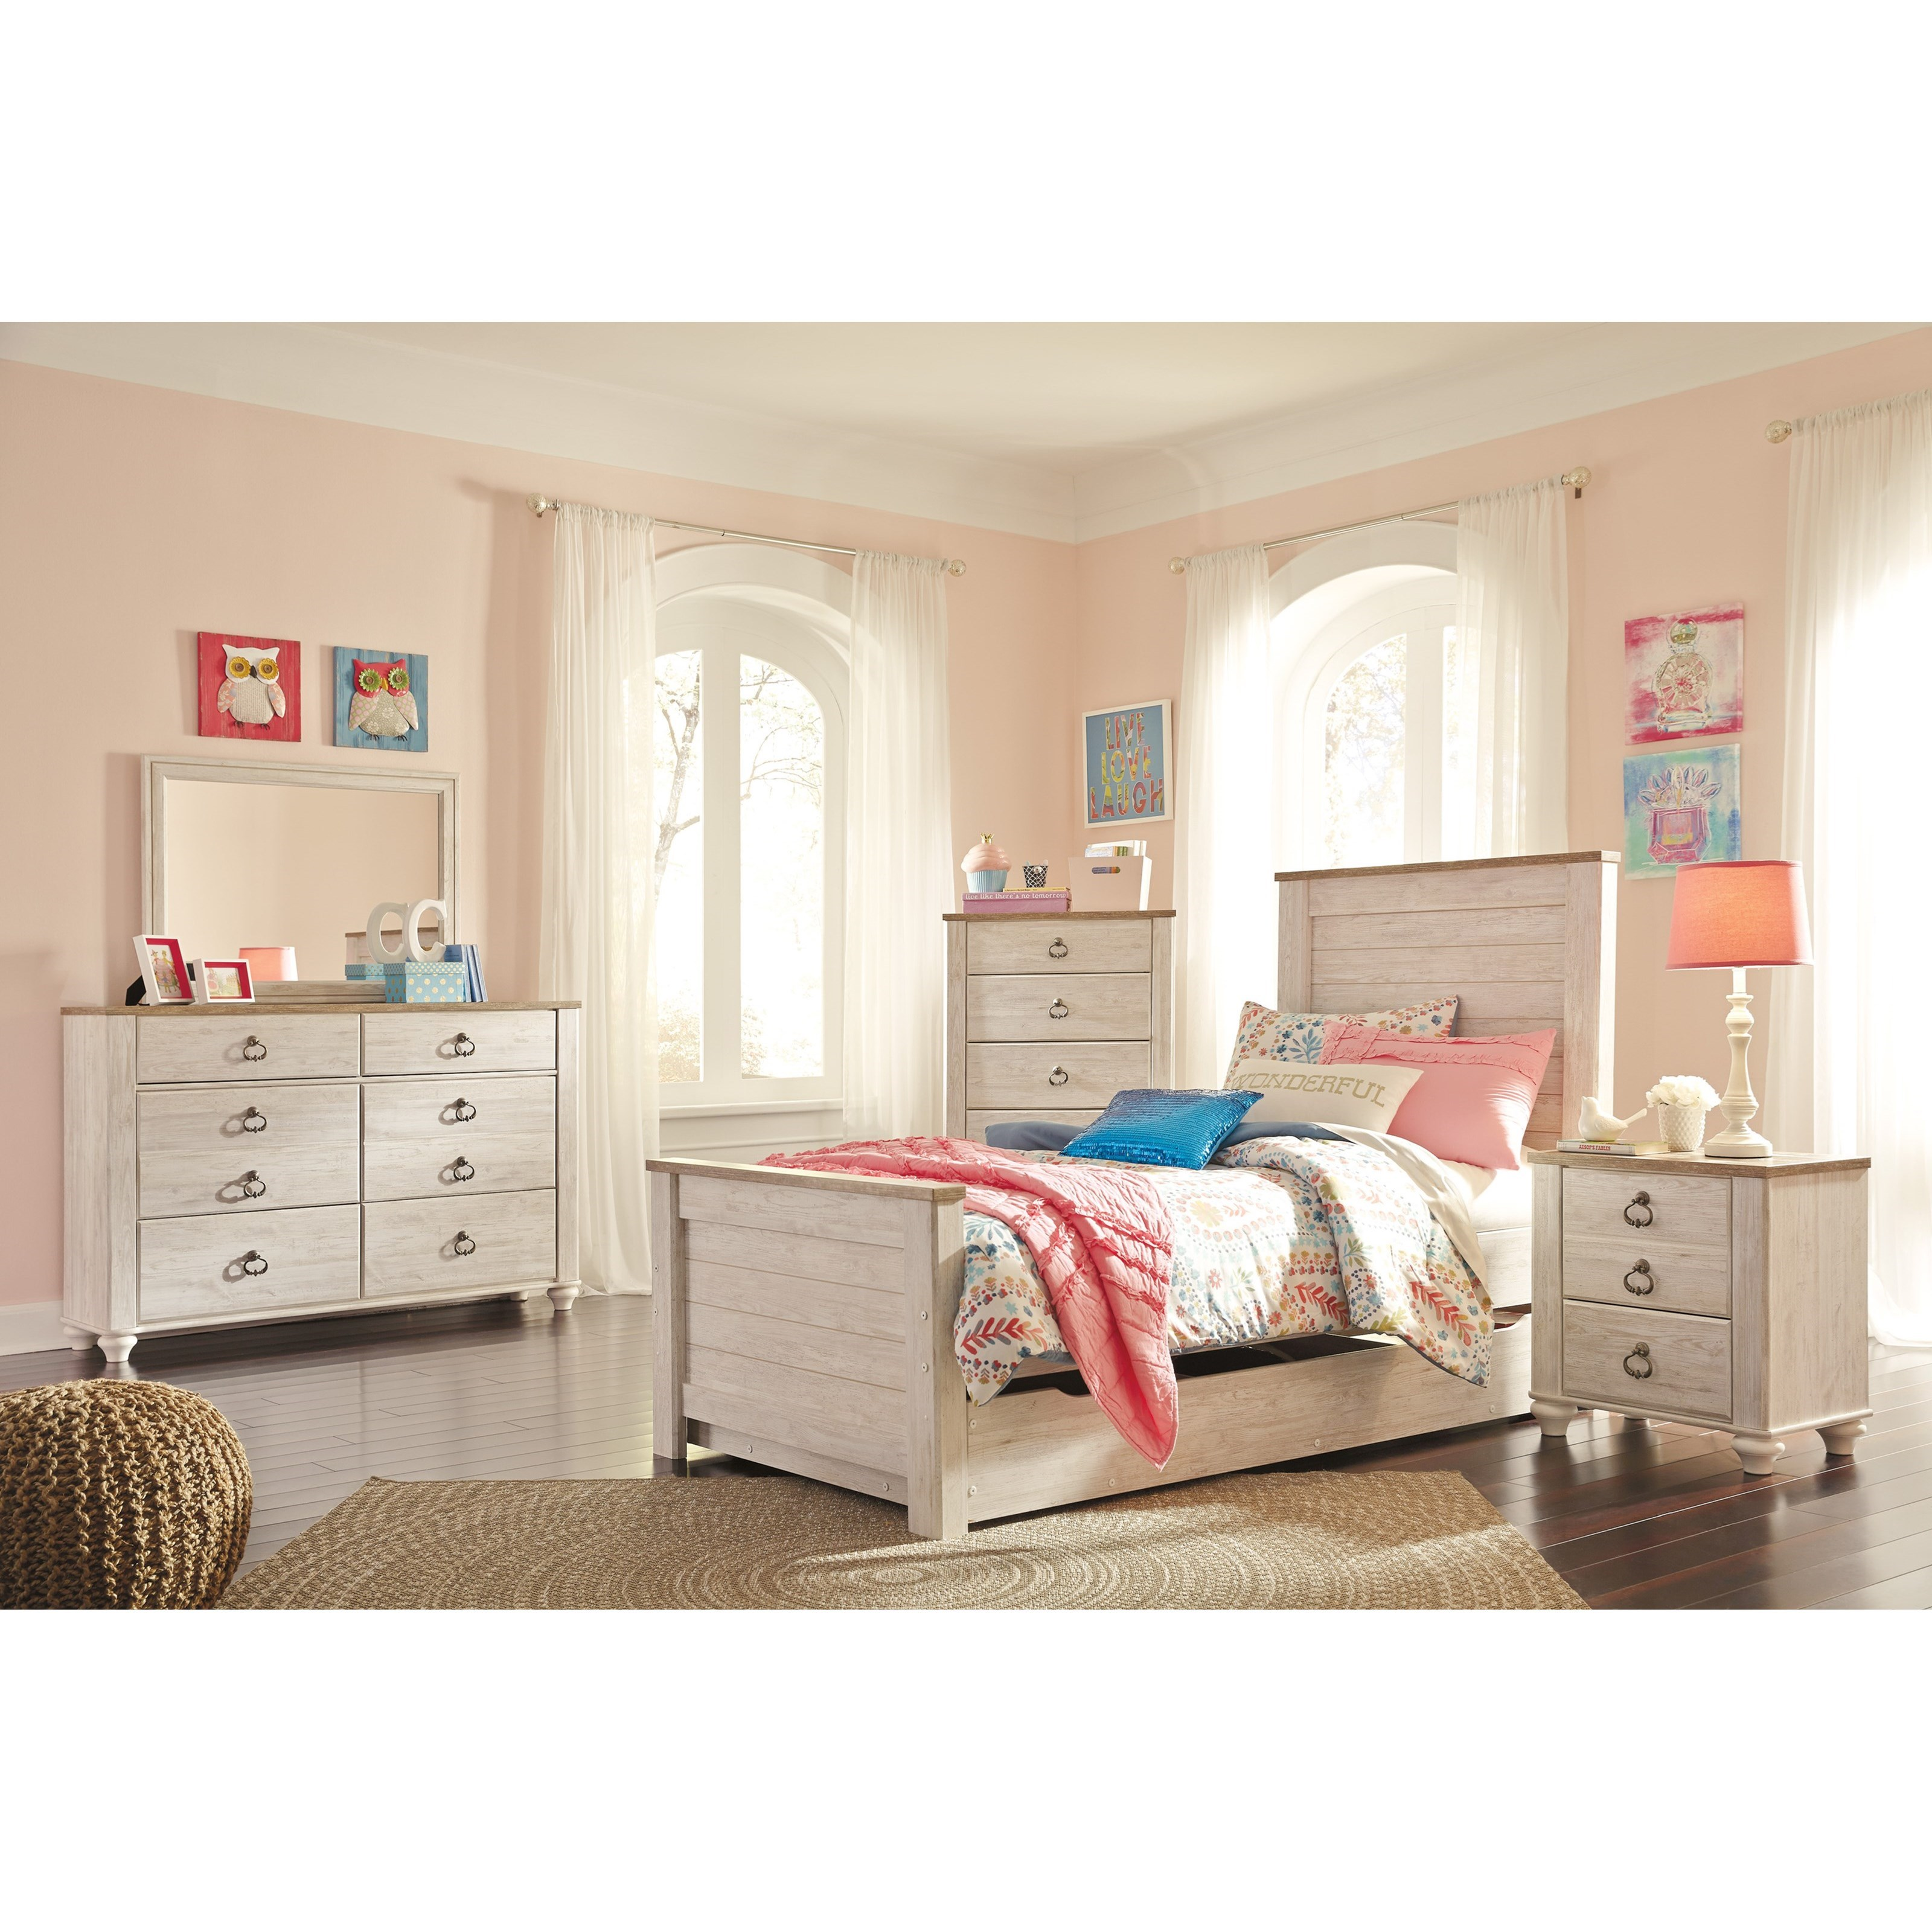 Signature design by ashley willowton twin bedroom group for Bedroom furniture groups